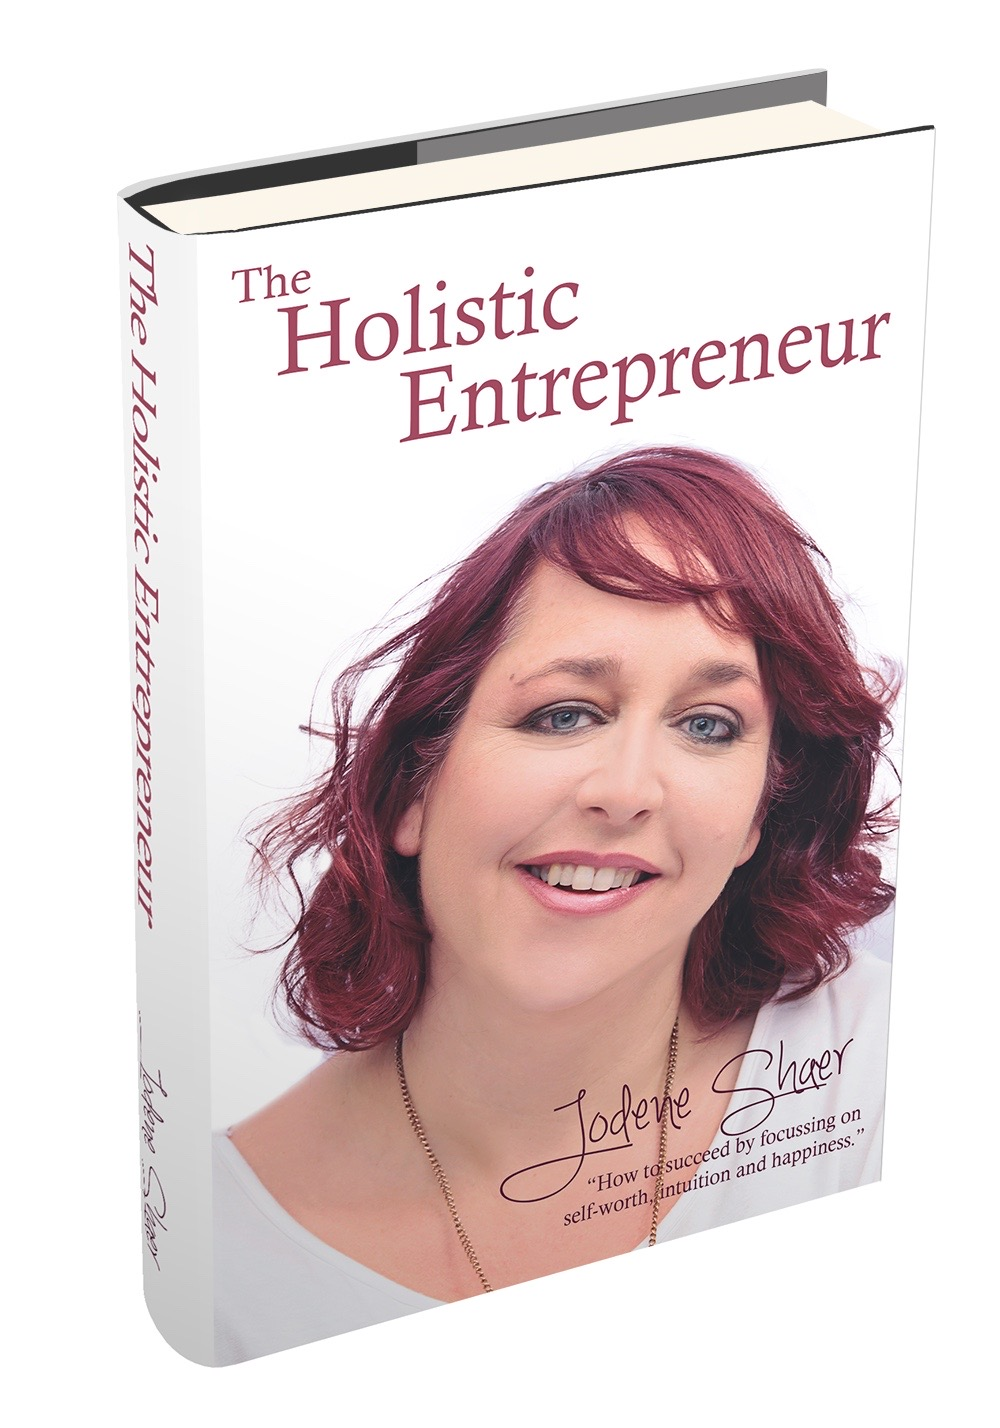 The Holistic Entrepeneur